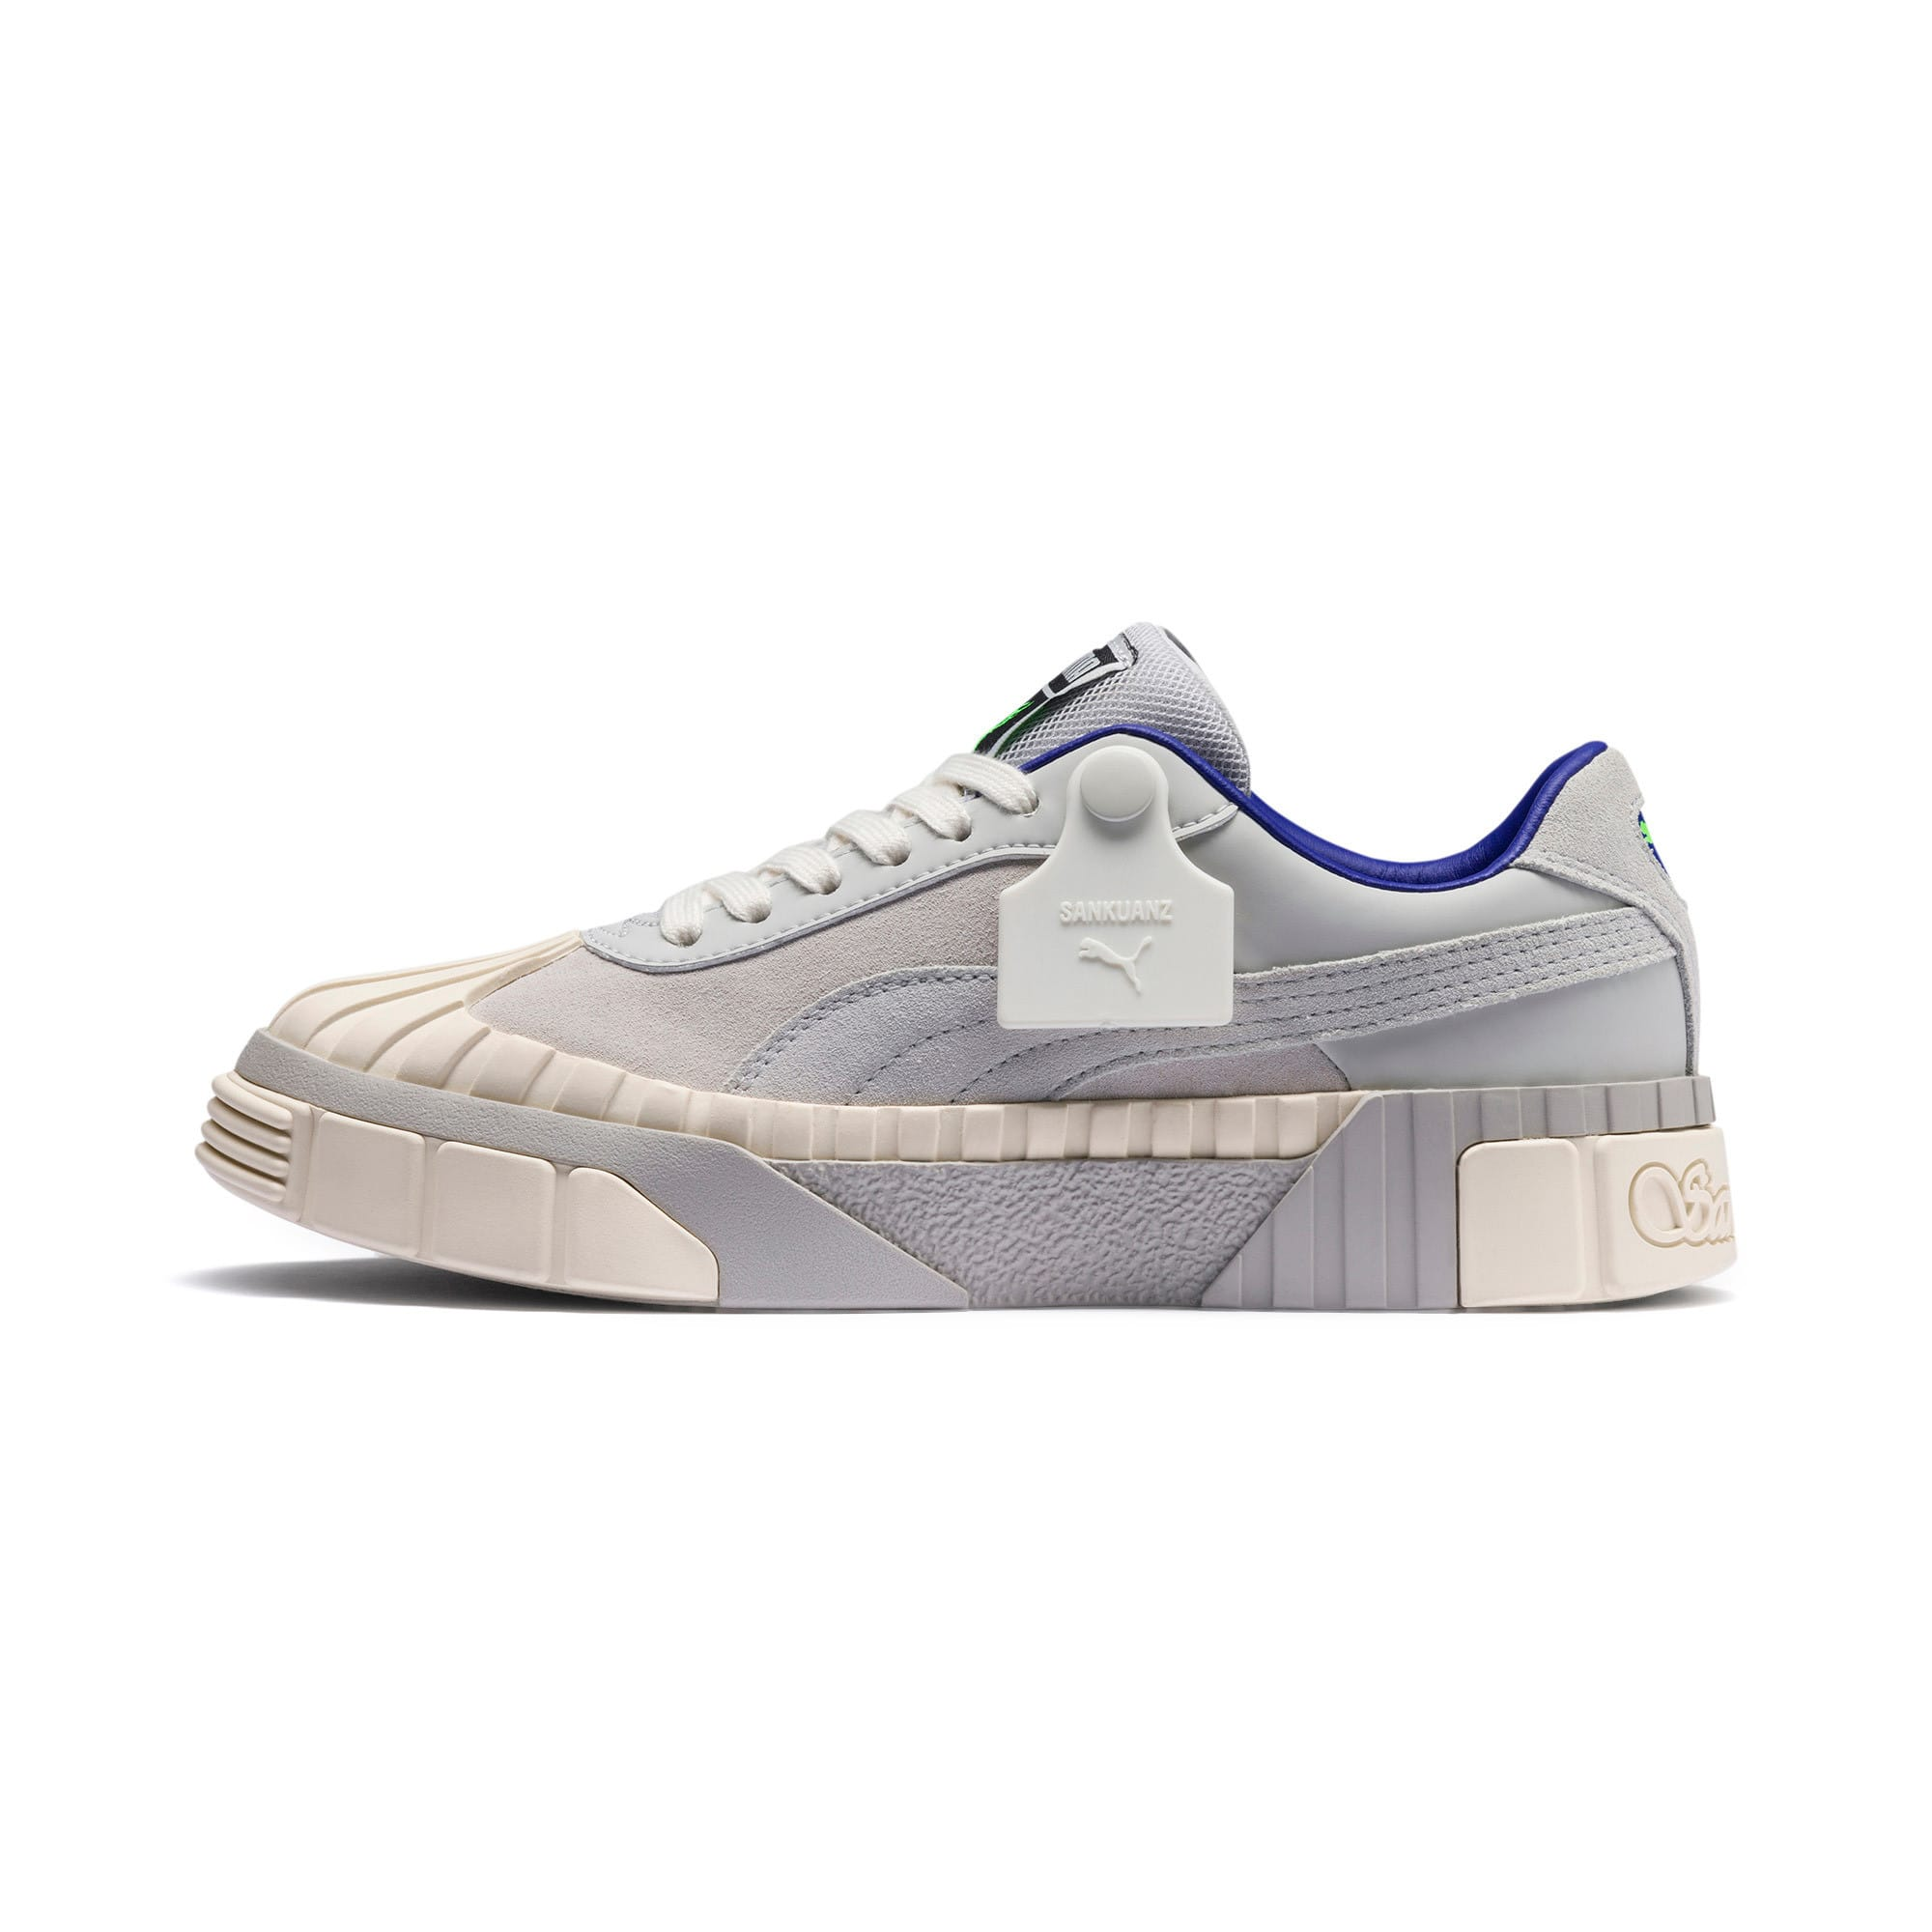 Thumbnail 1 of PUMA x SANKUANZ CALI WOMEN'S, Gray Violet-Whisper White, medium-JPN